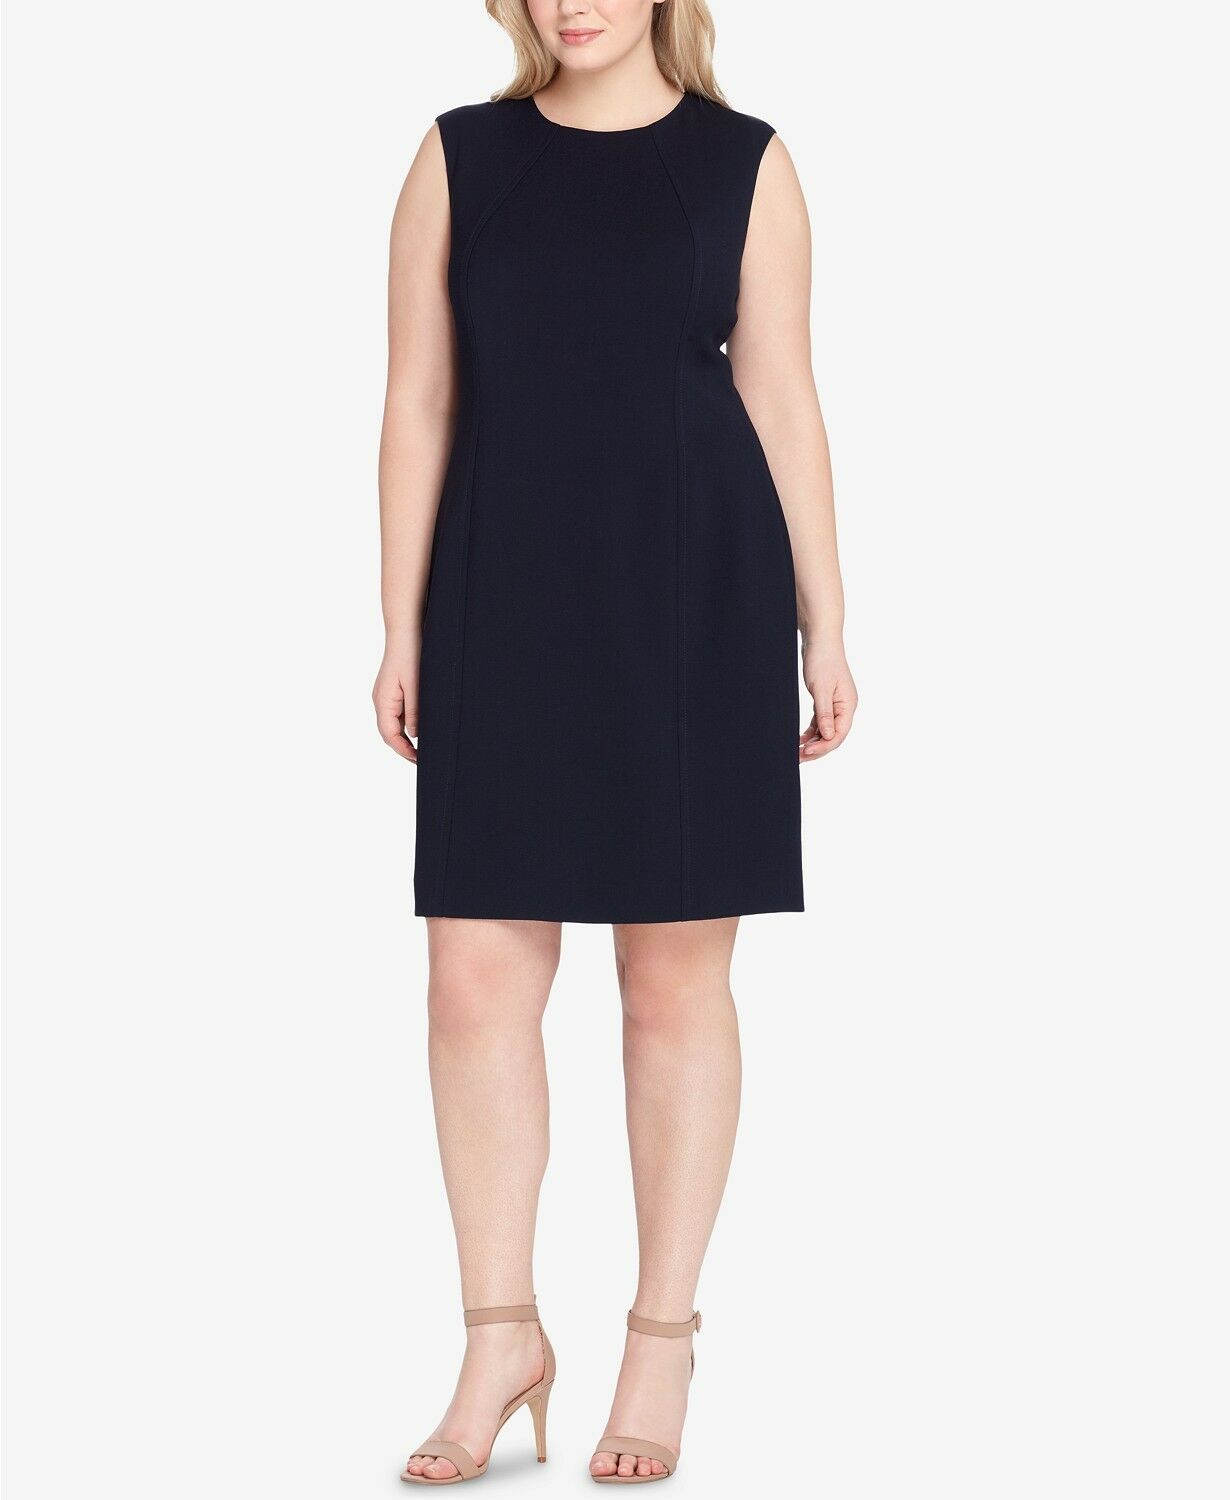 TAHARI ASL damen Blau SLEEVELESS KNEE-LENGTH SHEATH DRESS PLUS Größe 24W